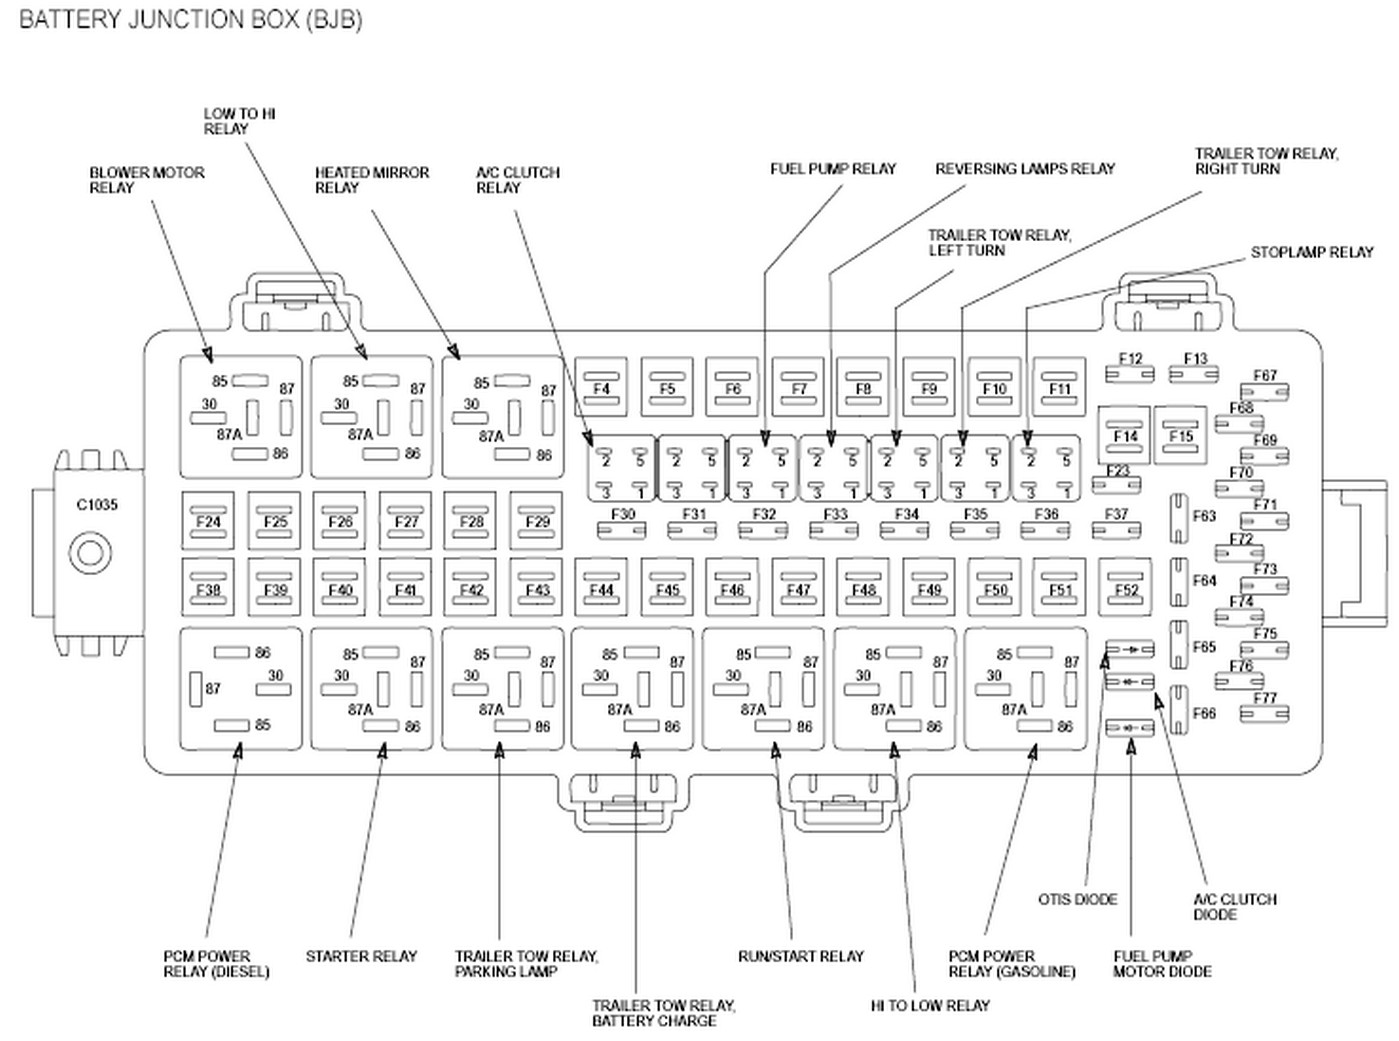 2011 ford f250 fuse box diagram Zoinyhu 2012 f250 fuse box location 2009 ford fusion fuse box diagram 2012 ford edge fuse box diagram at cita.asia